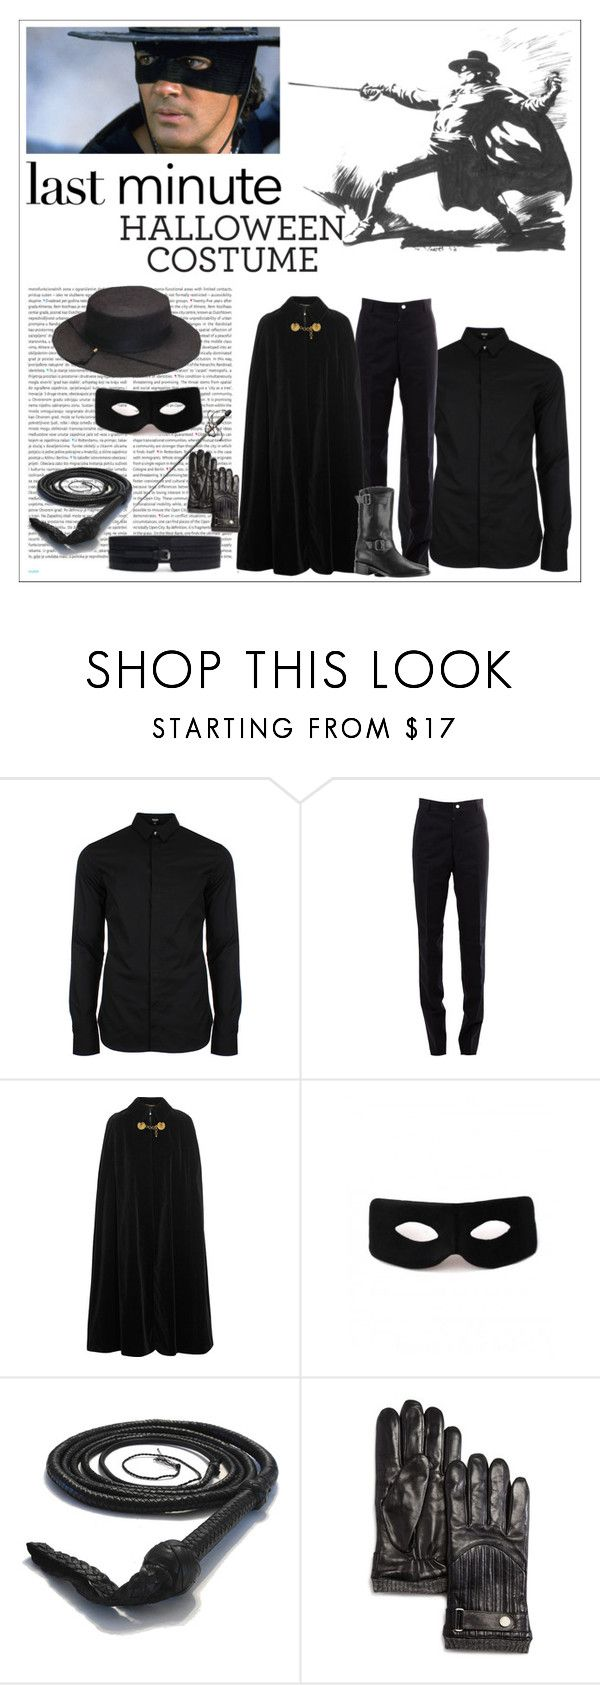 """Zorro Costume"" by larinhacarter ❤ liked on Polyvore featuring Versus, Thom Browne, Oris, Yves Saint Laurent, Chanel, Polo Ralph Lauren, men's fashion and menswear"